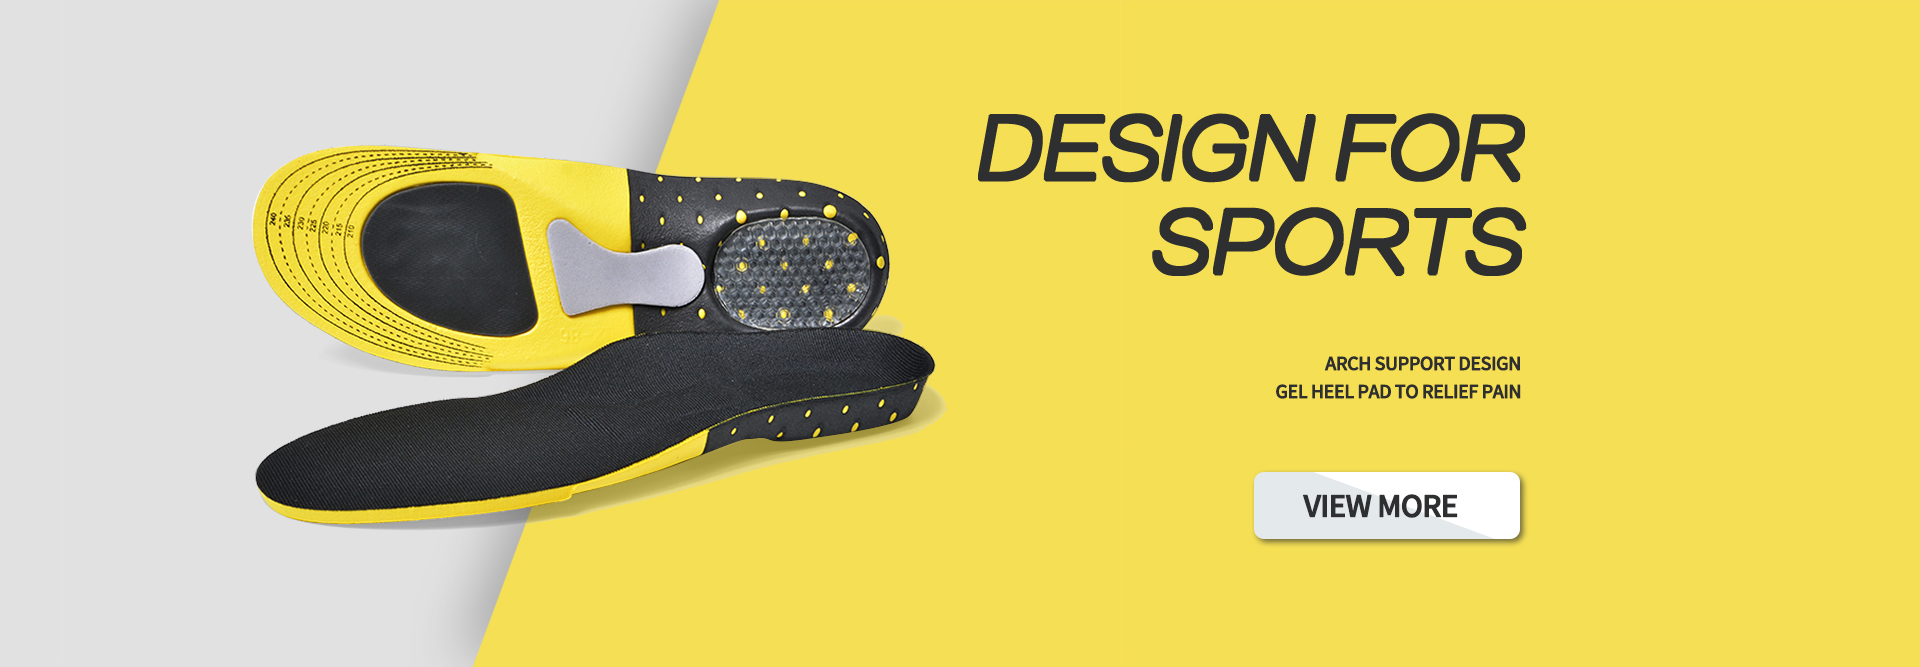 Sports insole